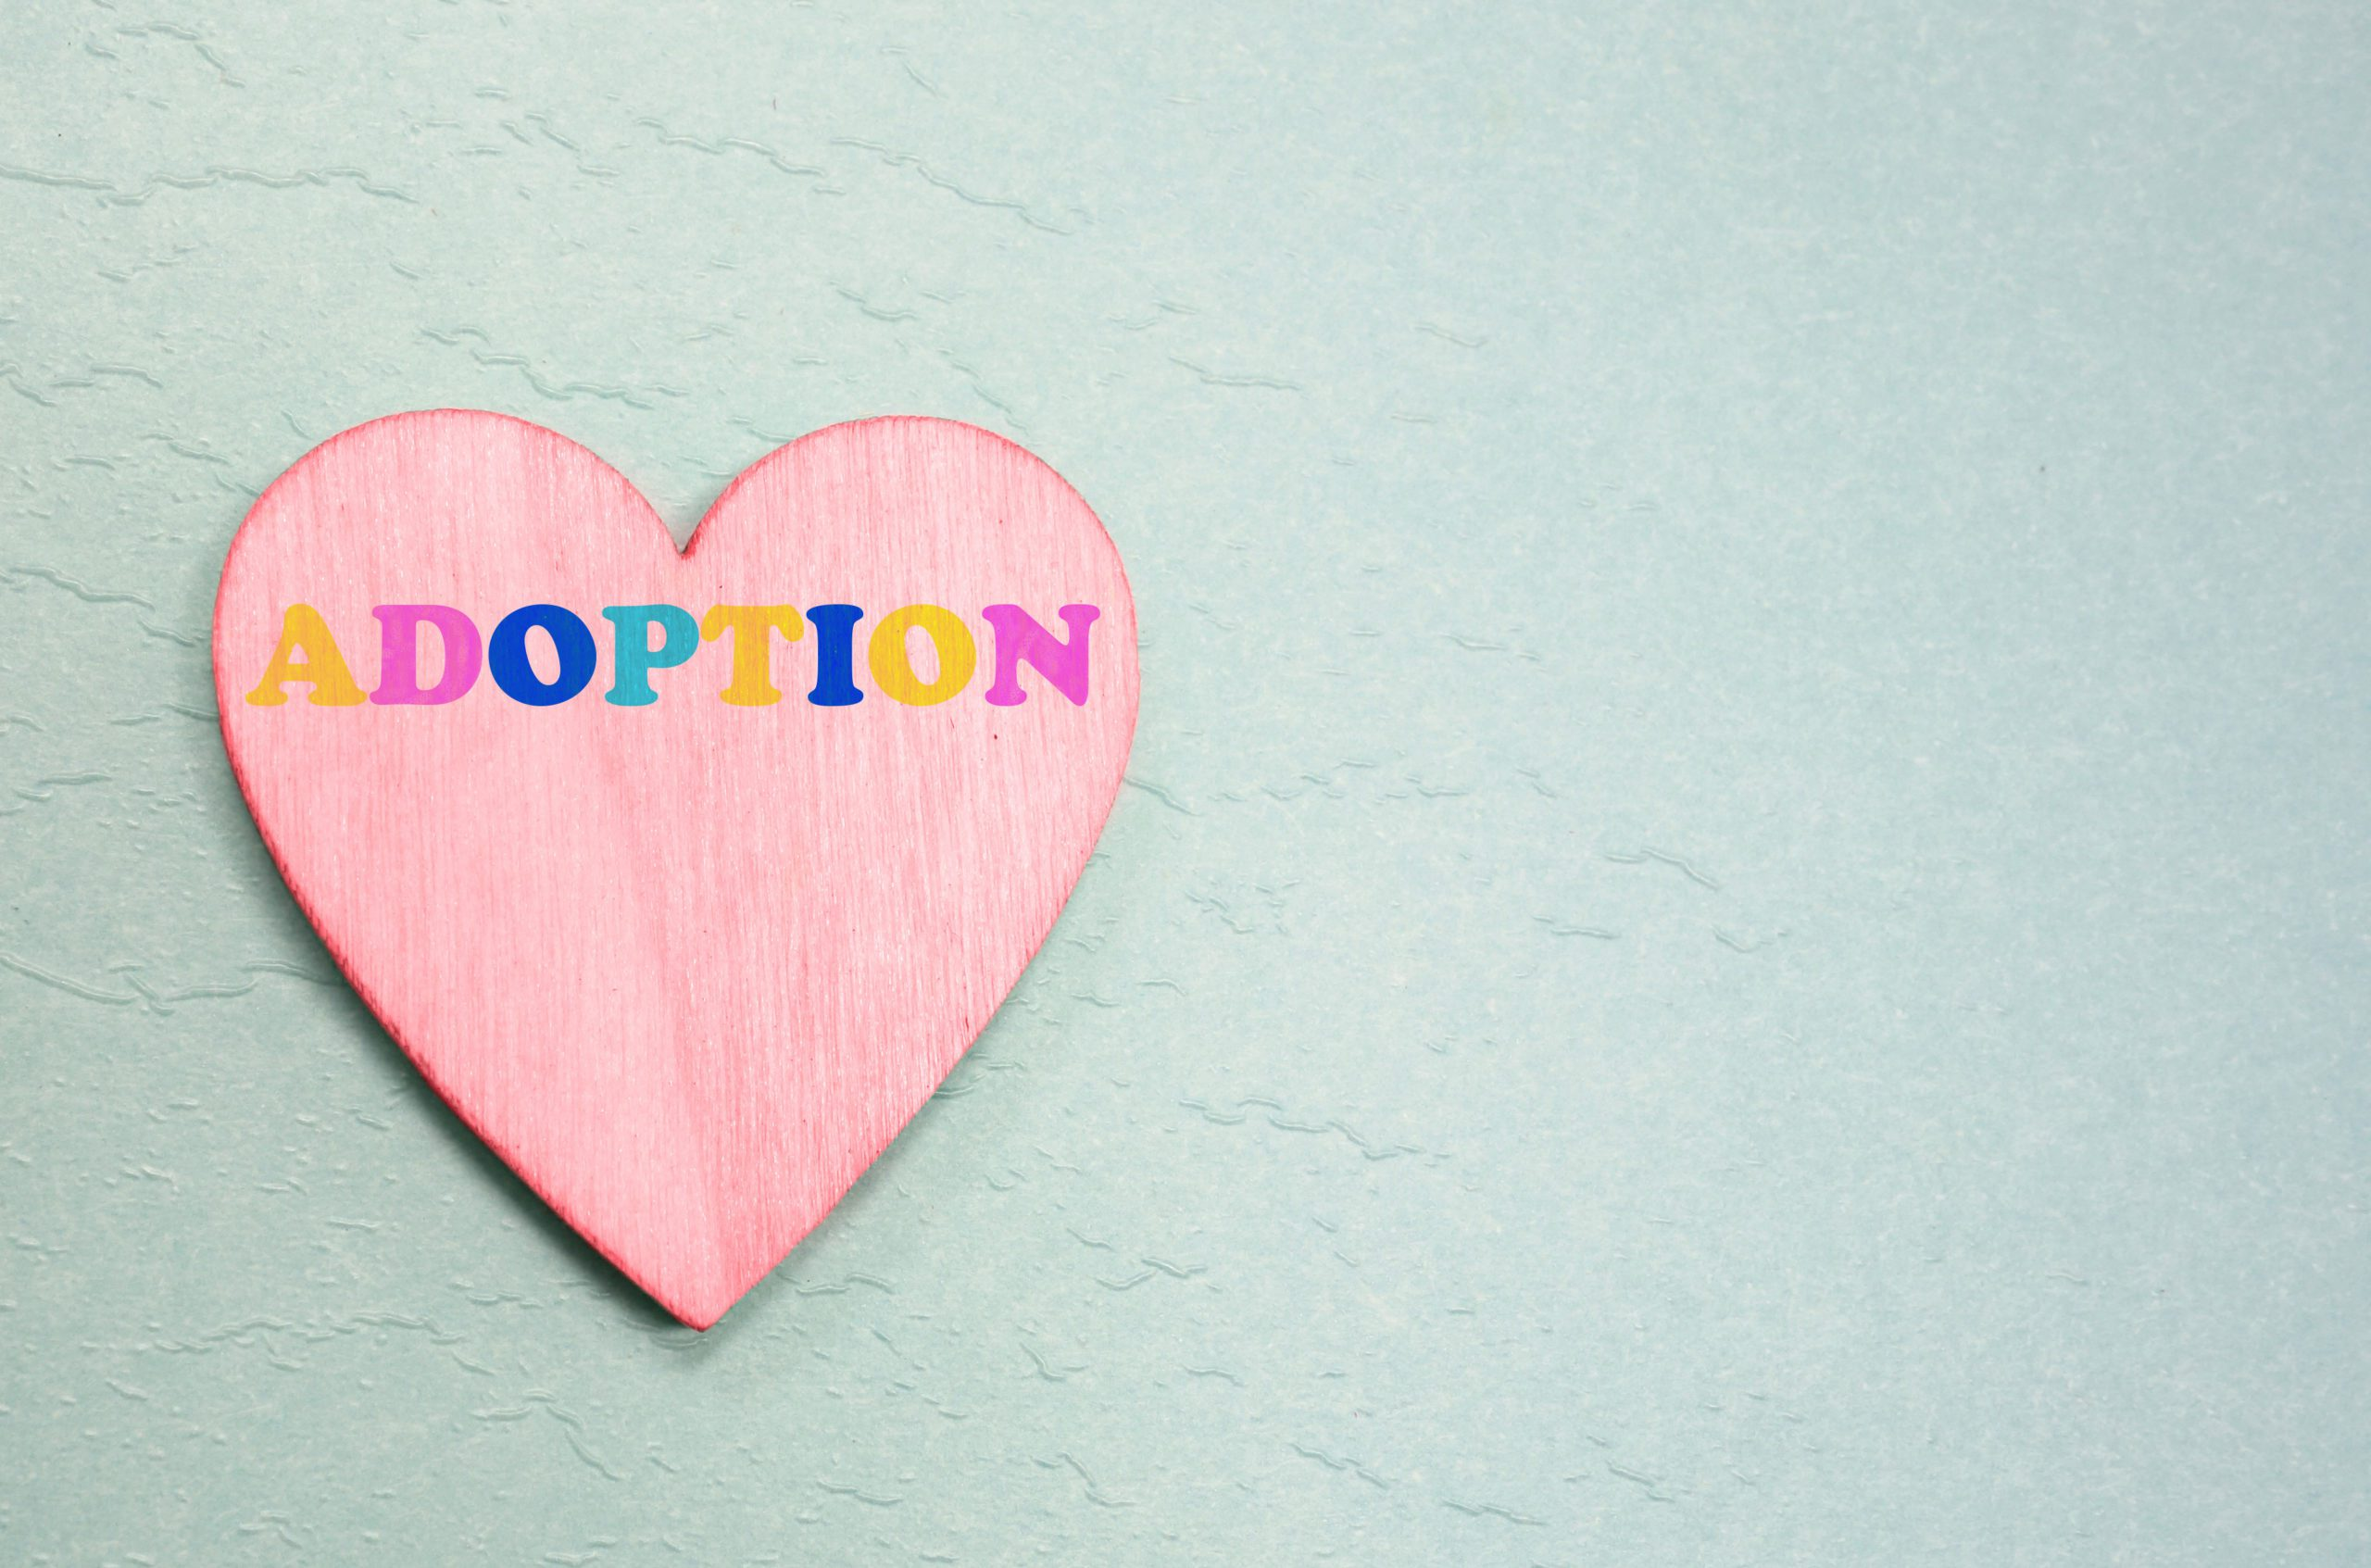 The word adoption written in multicolor letters on a pink heart, with a soft blue background.